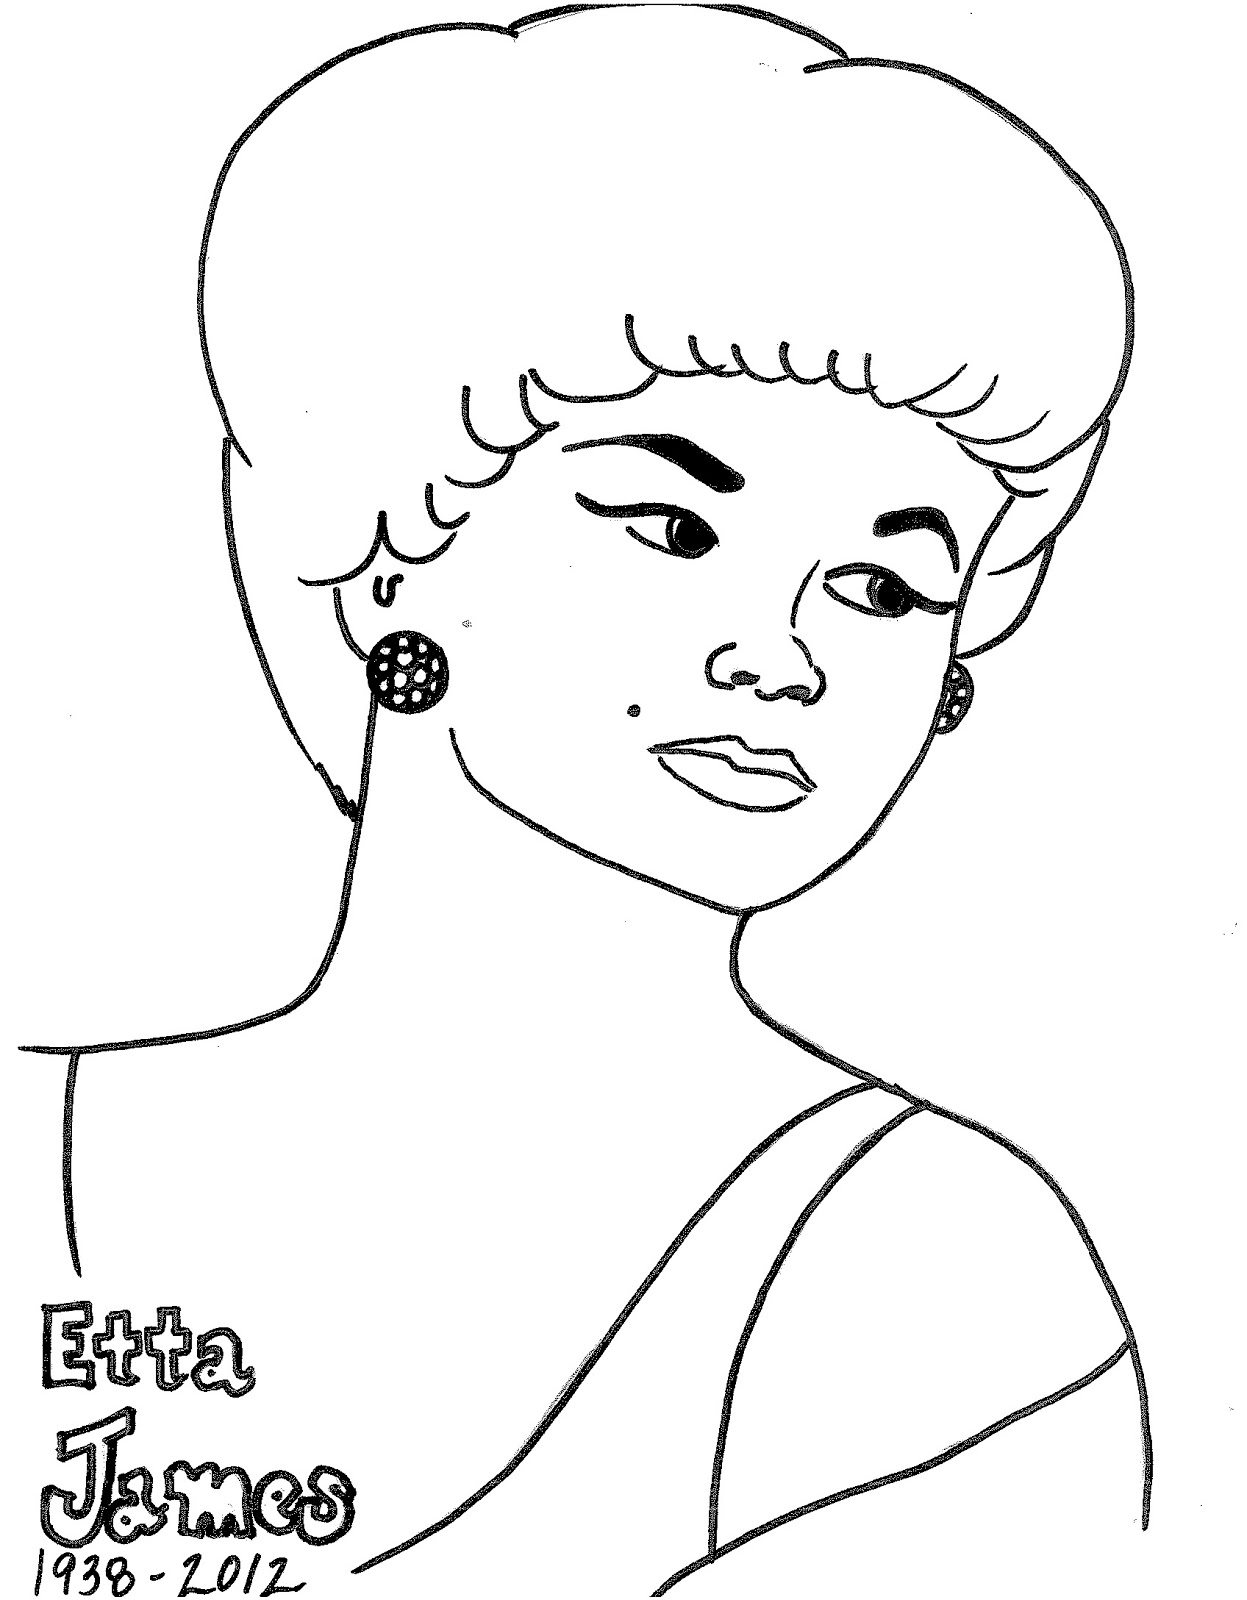 Uncategorized History Coloring Pages to do and see womens history coloring pages pdf file of etta james page